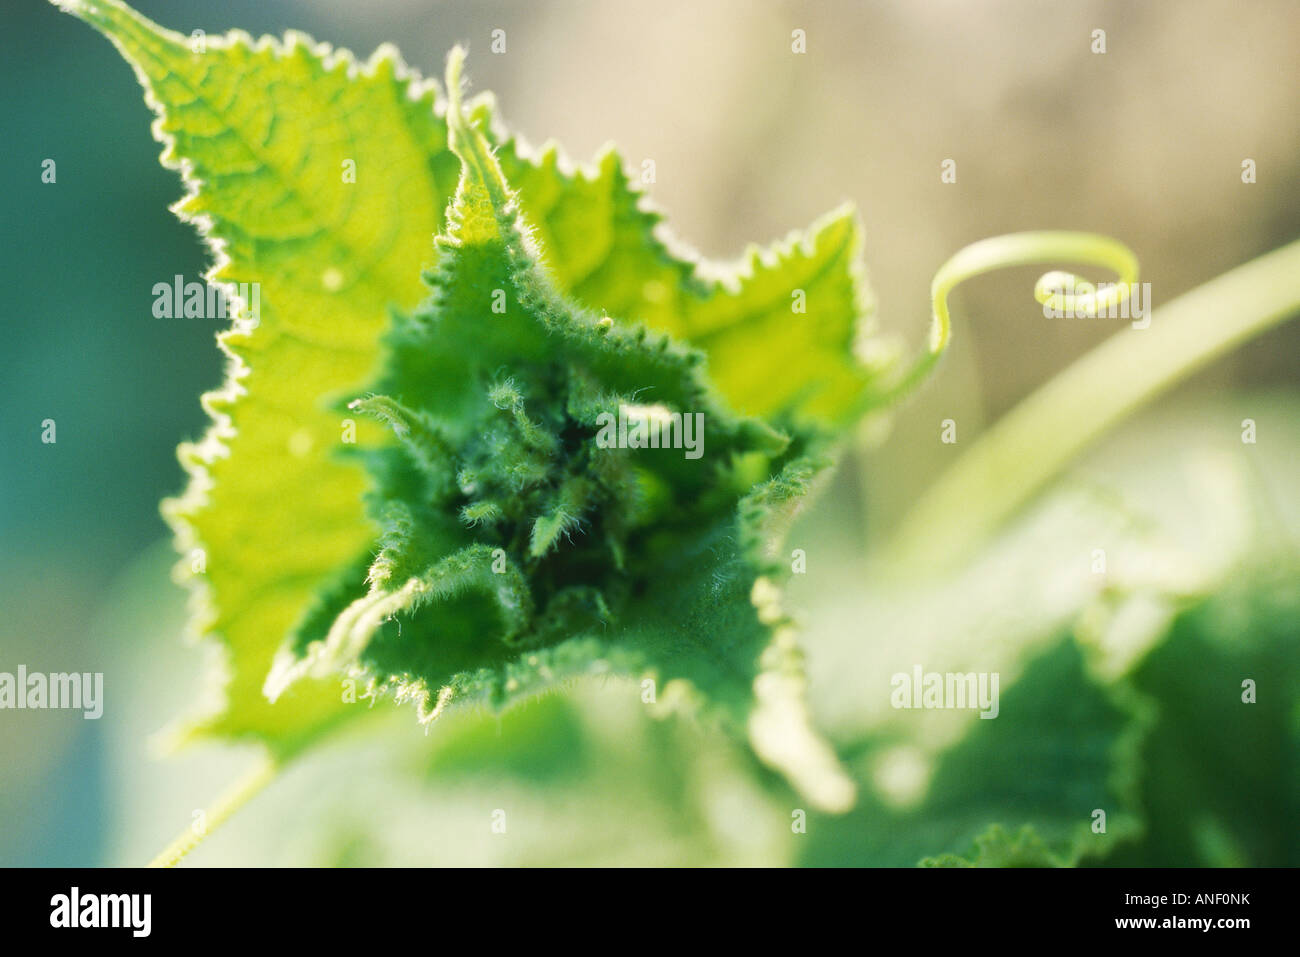 Leafs and tendrils in vegetable garden, extreme close-up Stock Photo